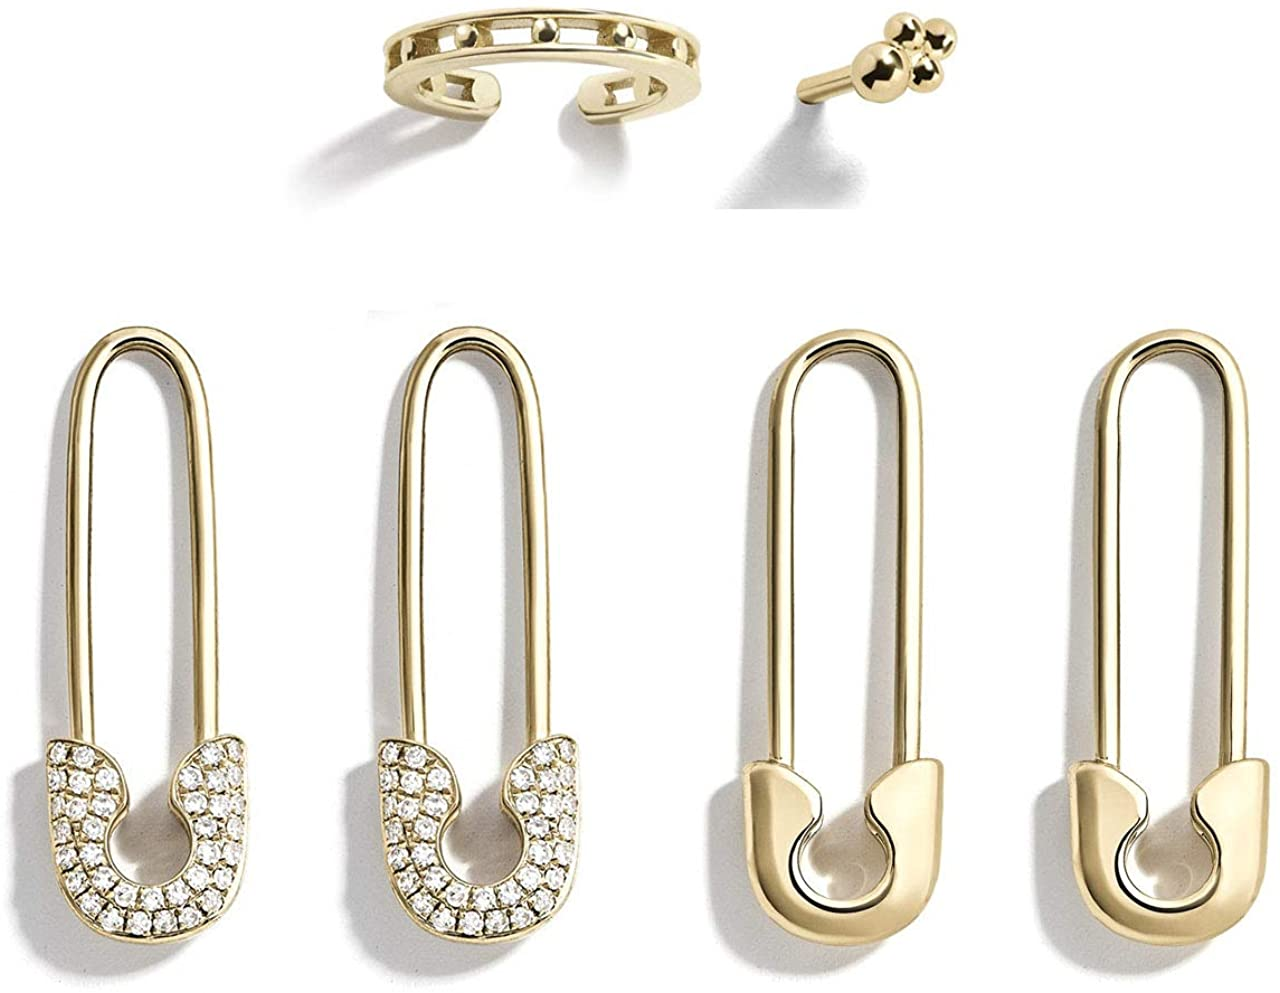 Fashion Gold Tone Safety Pins Hoop Earrings for Women Cartilage Paperclip Cuff Earrings Set Ear Clip Stud Jewelry